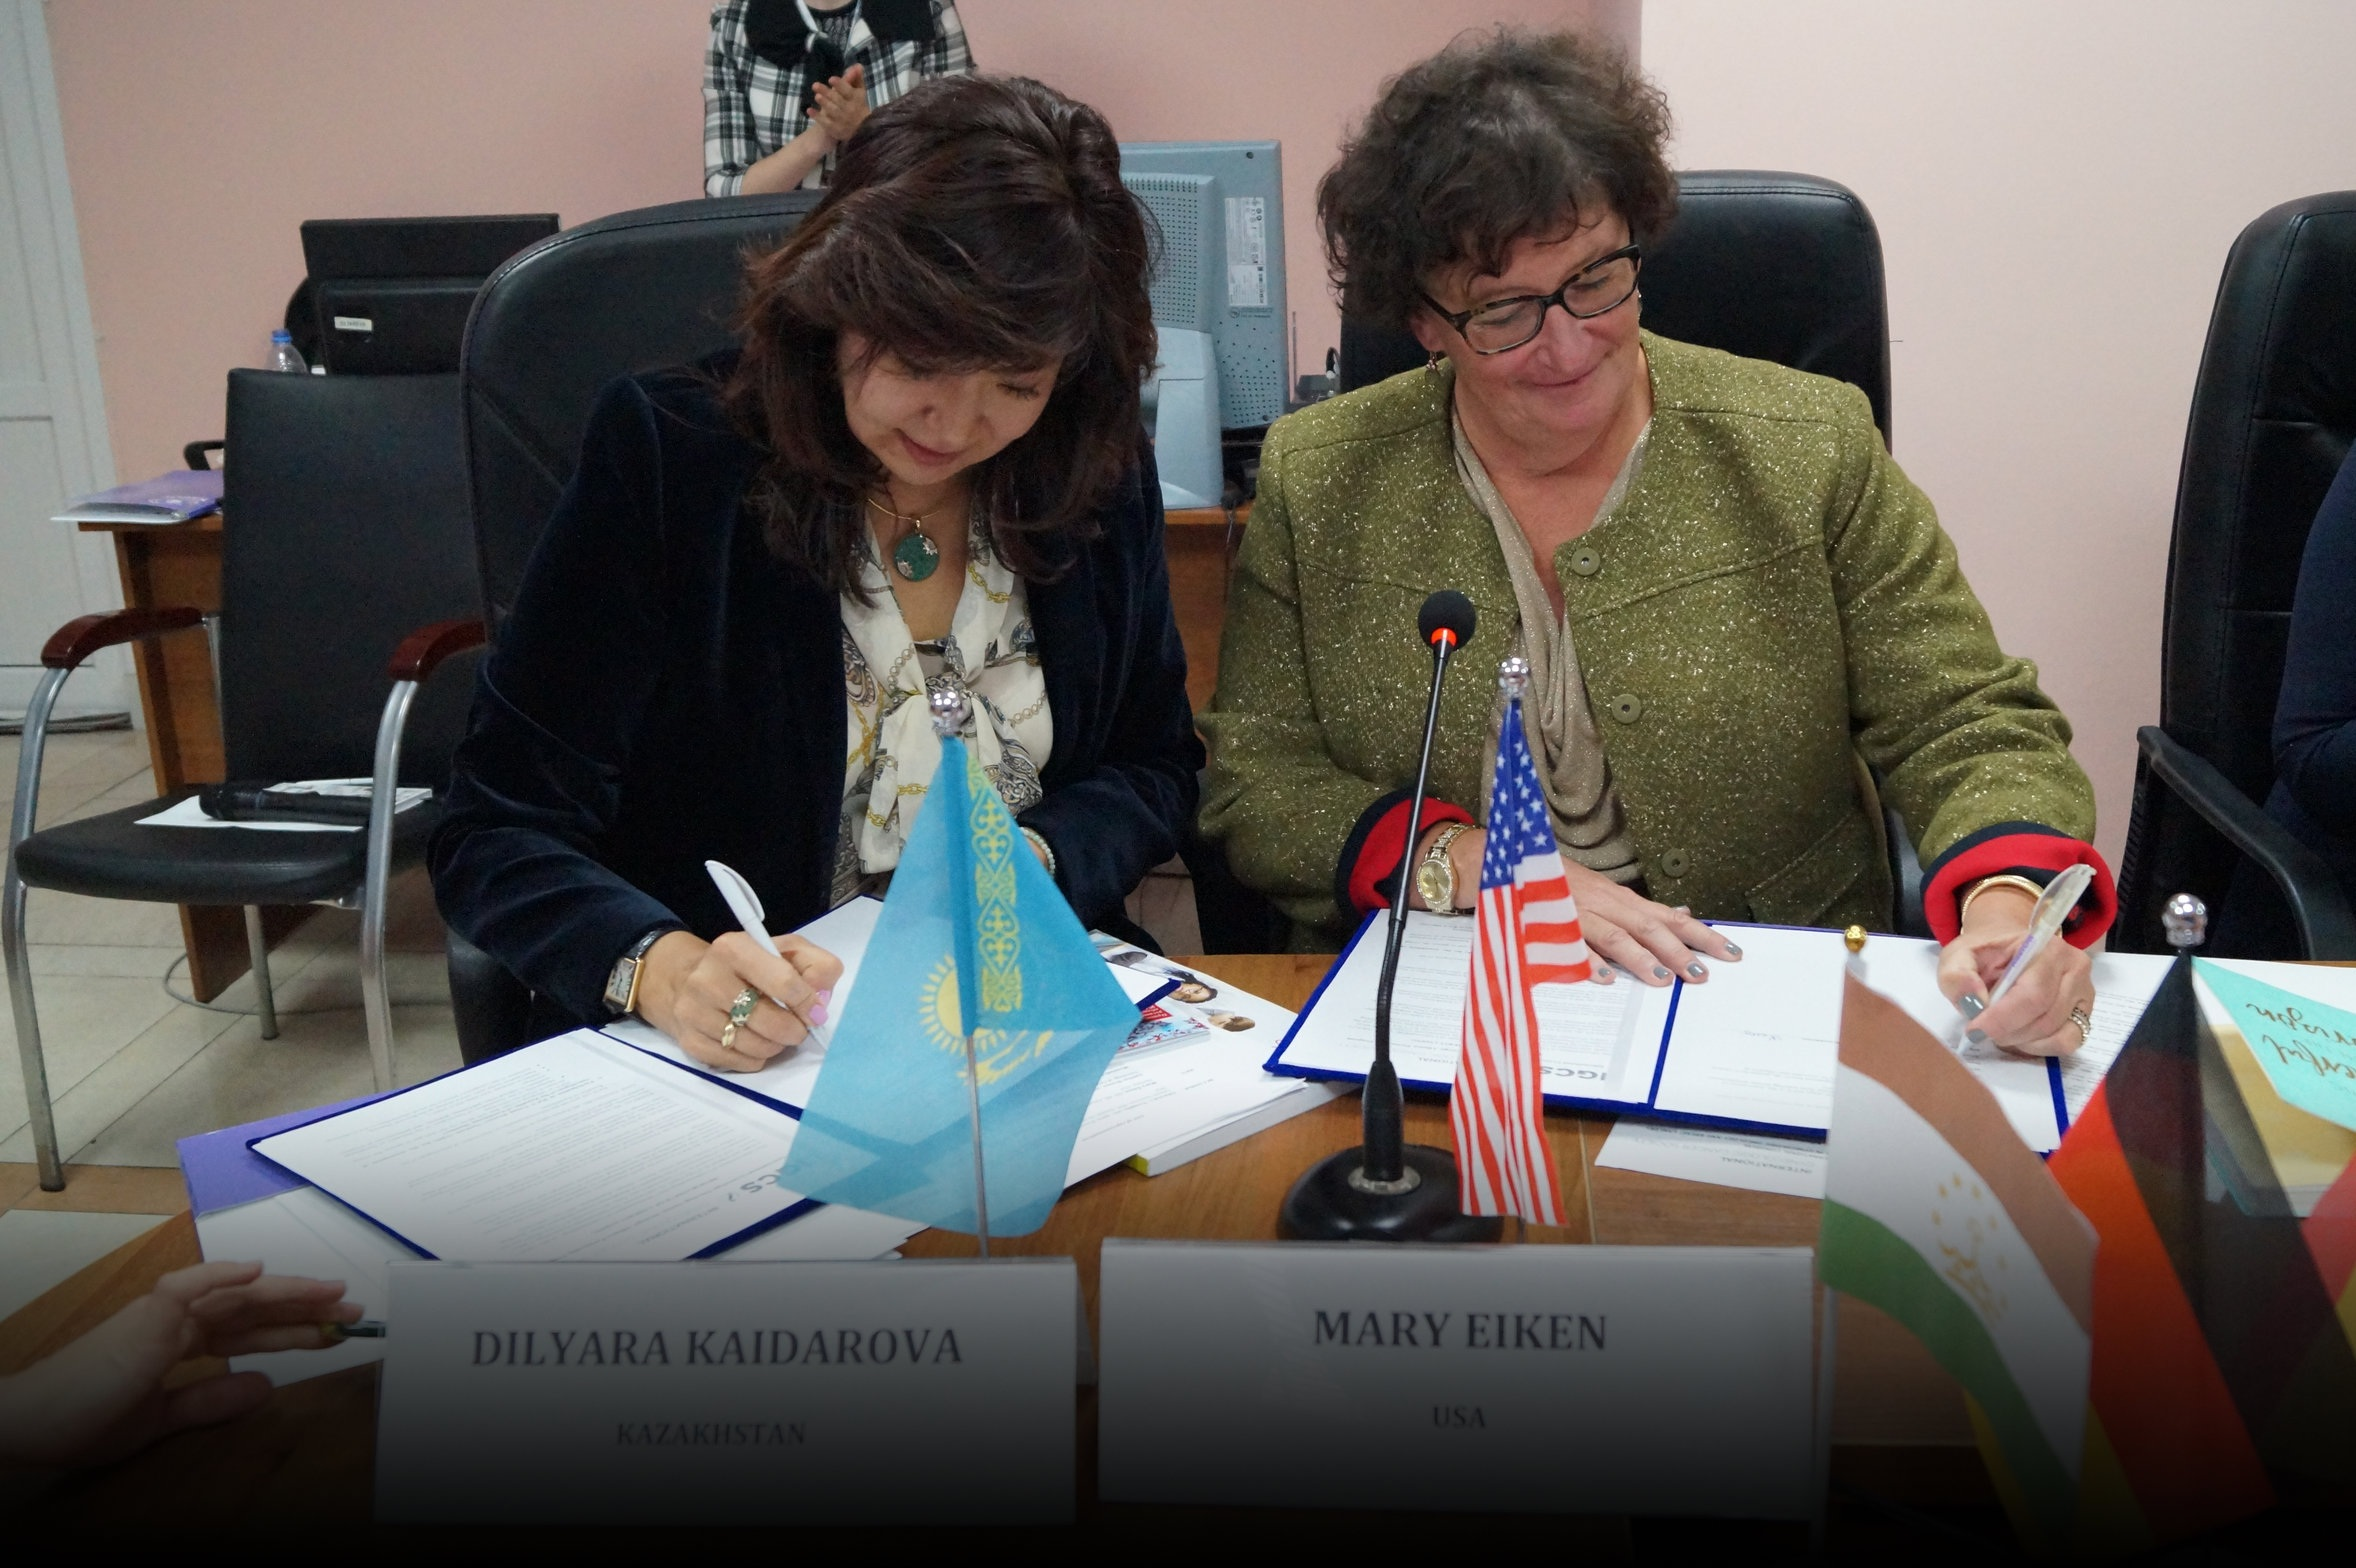 Kazakhstan and Uzbekistan join the IGCS Strategic Alliance Partnership in Almaty, Kazakhstan, 2017